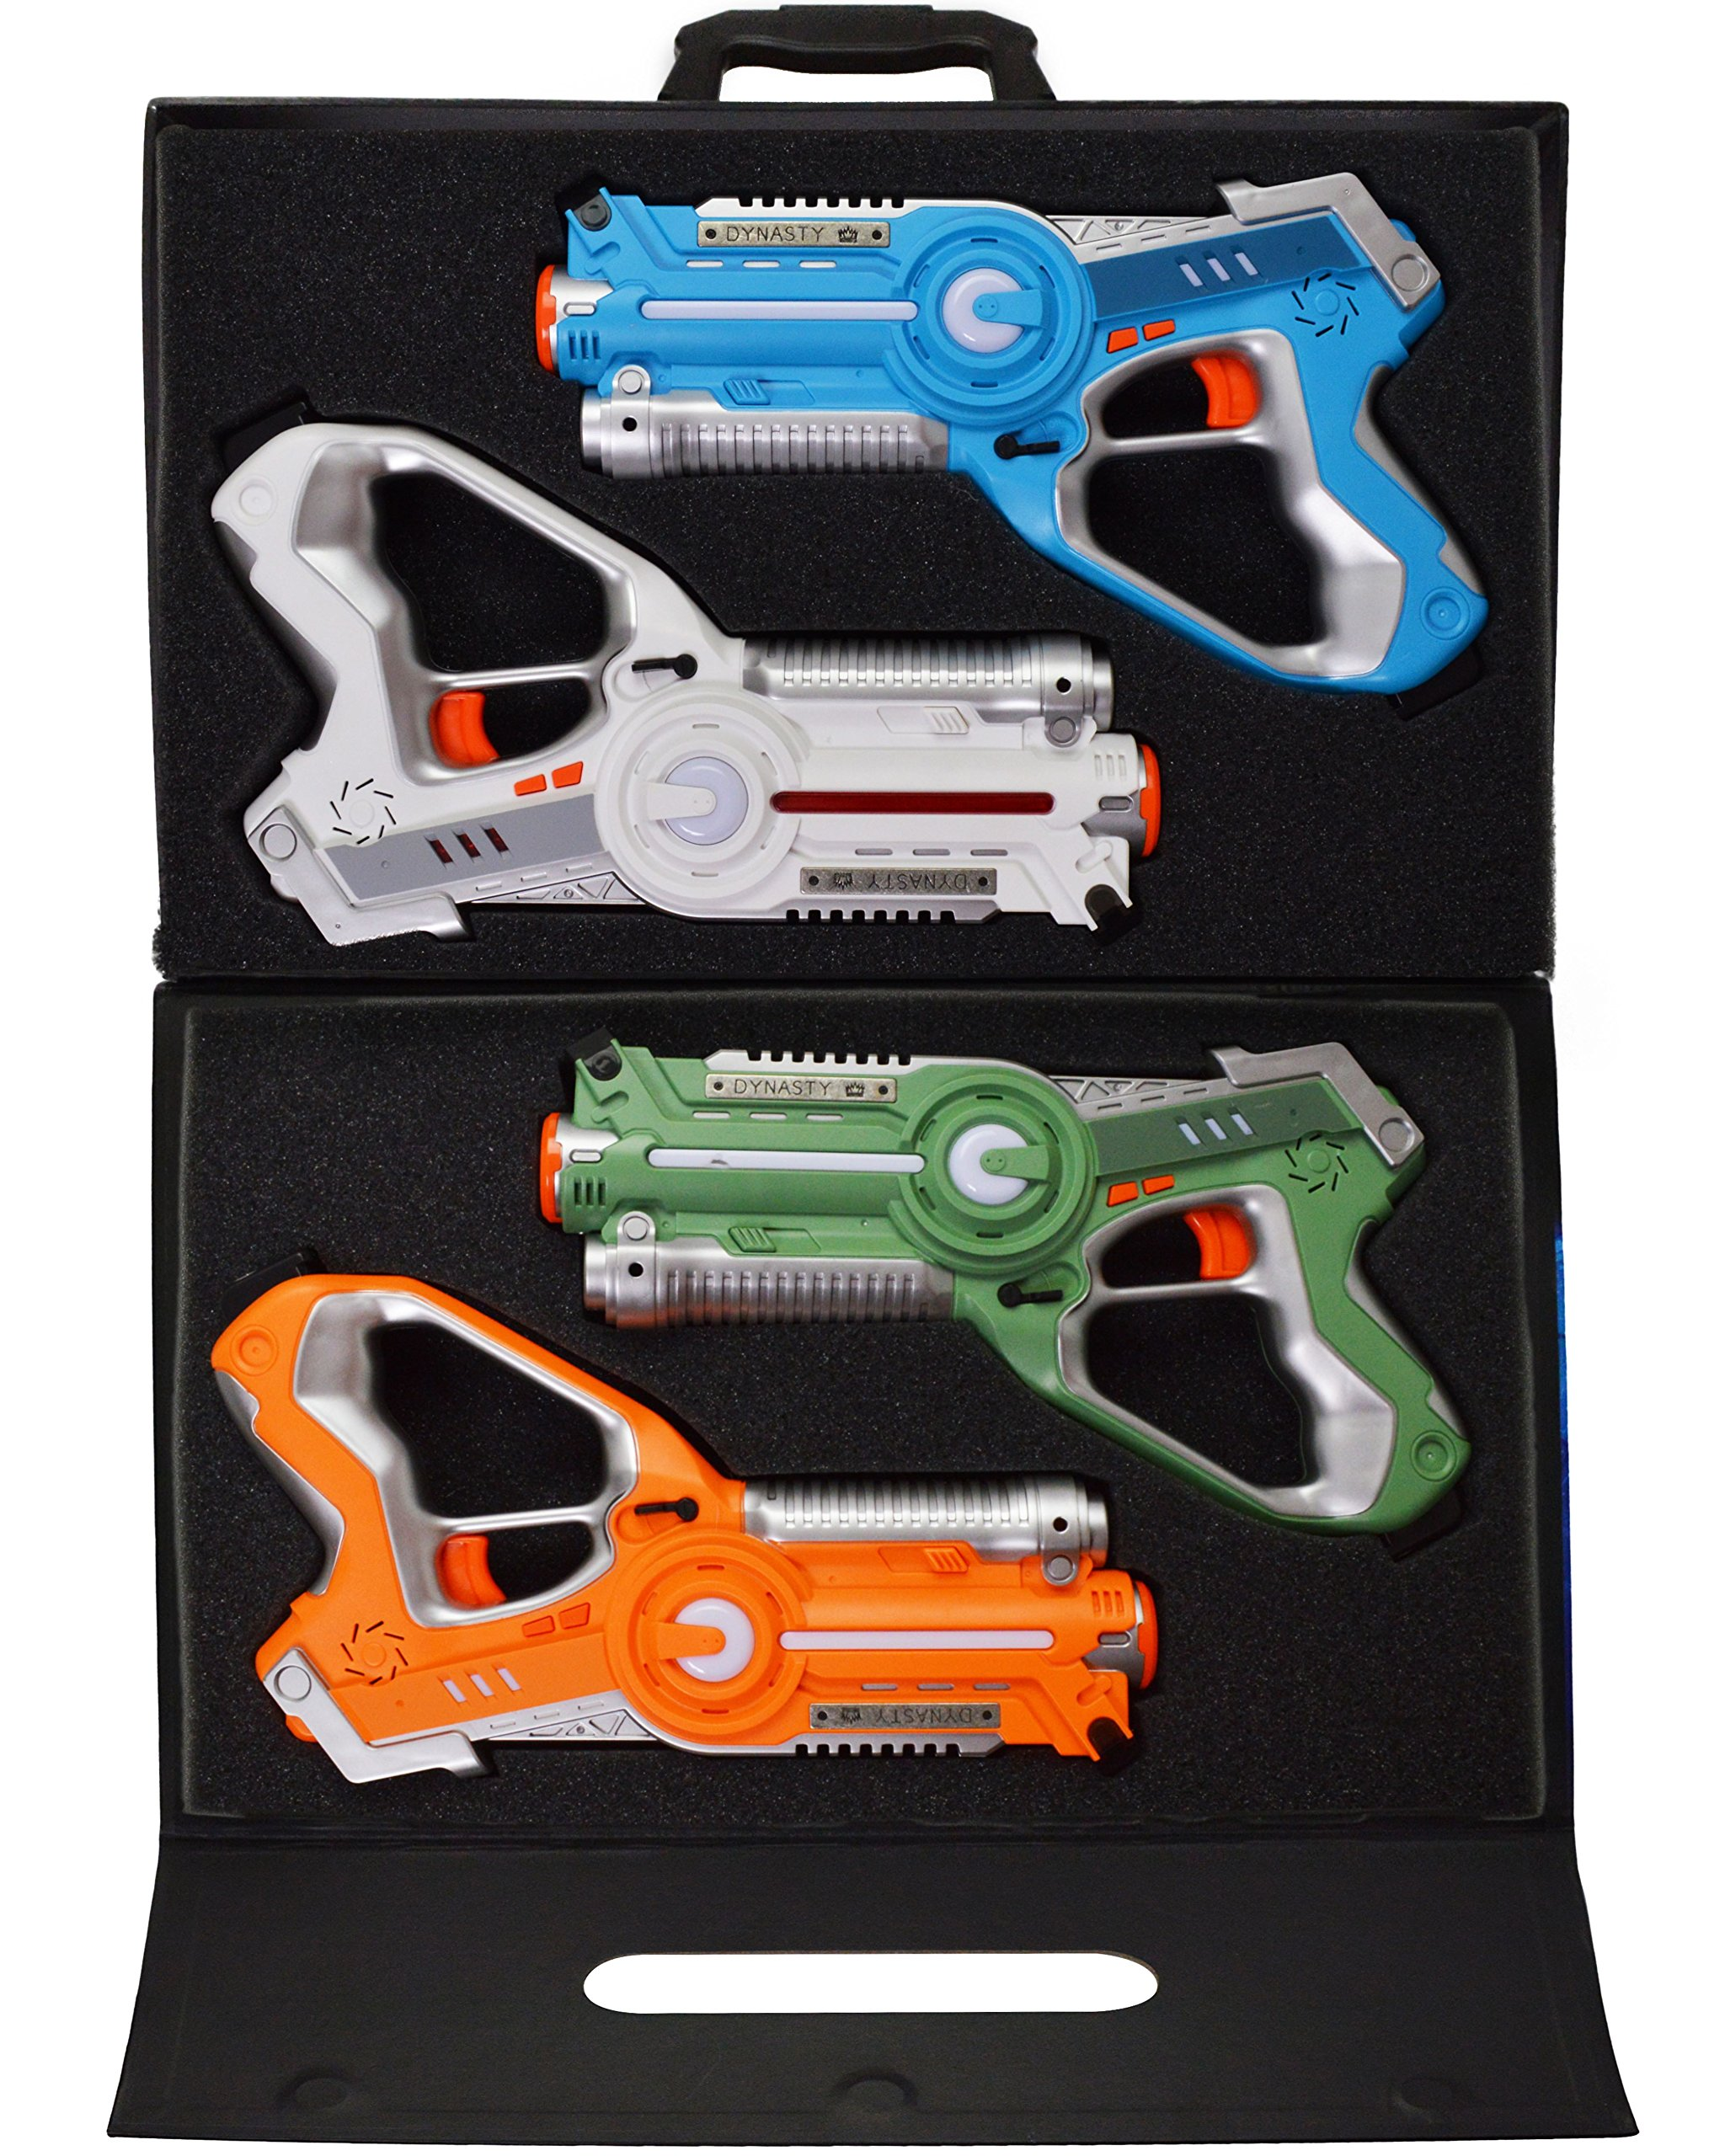 DYNASTY TOYS Laser Tag Set Toys and Carrying Case for Kids Multiplayer 4 Pack by DYNASTY TOYS (Image #1)